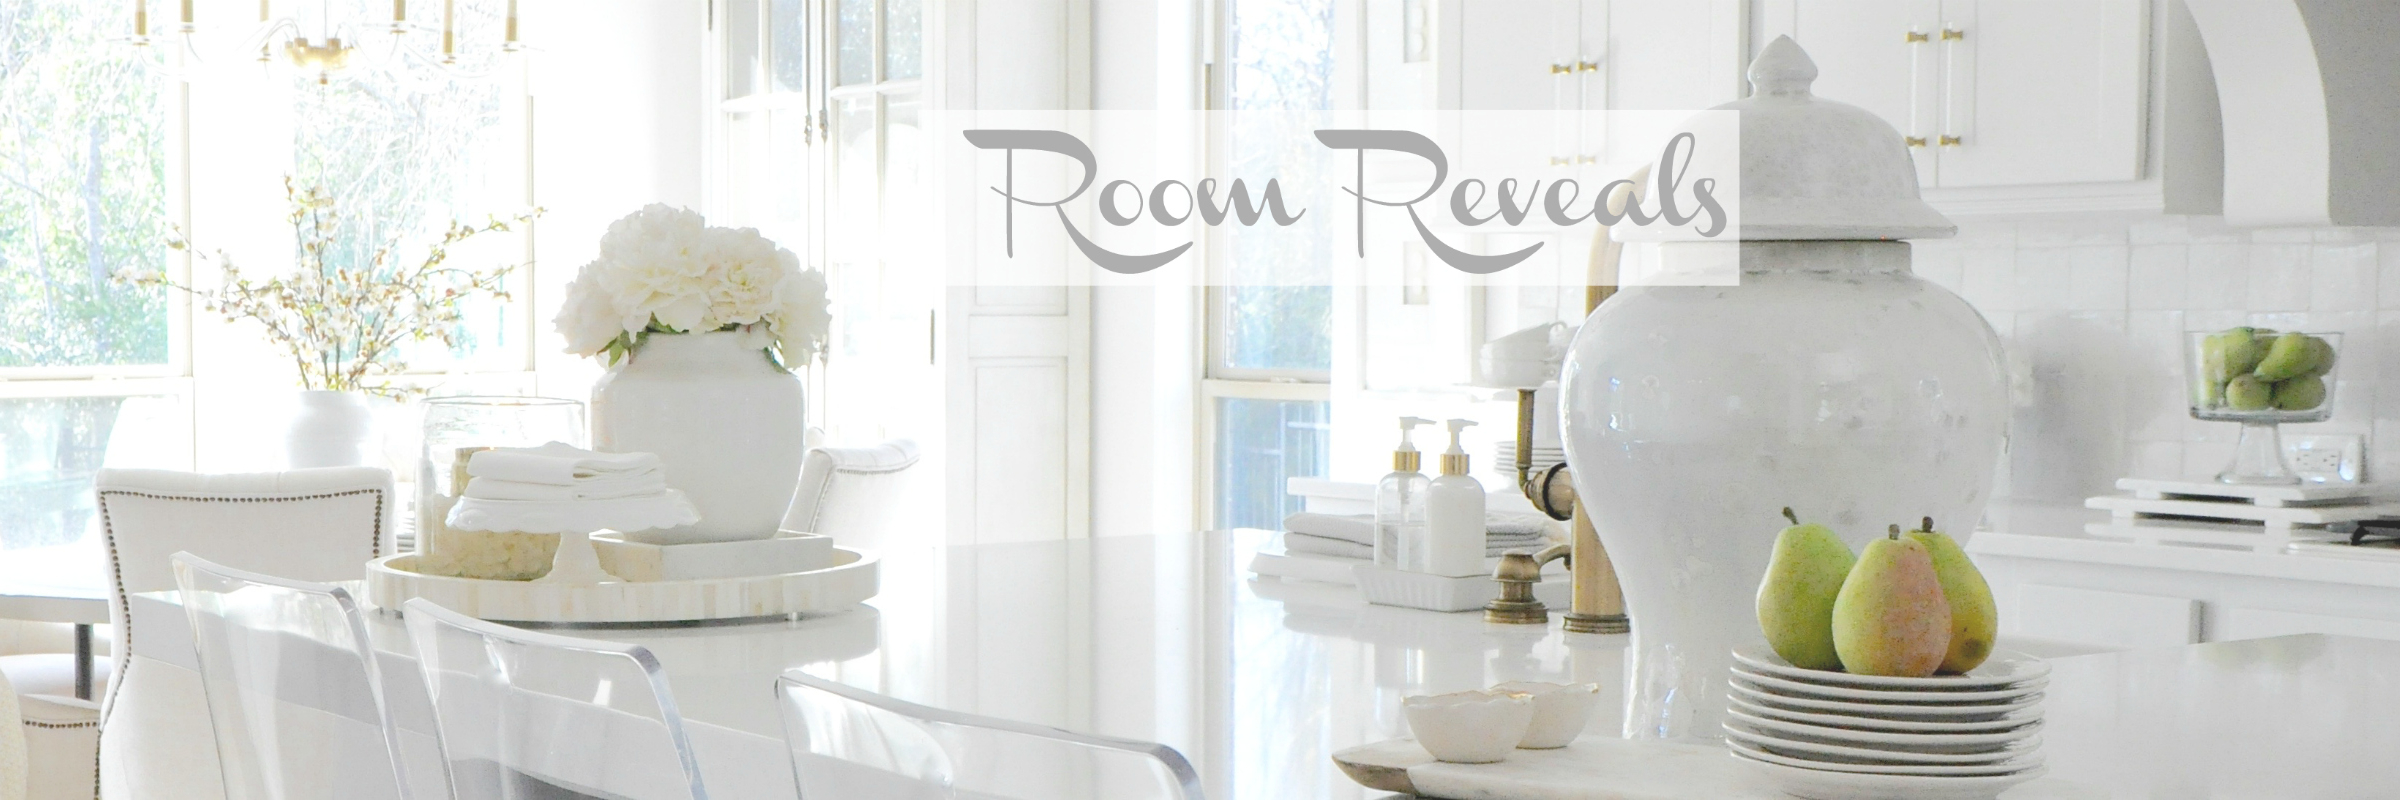 Decor Gold Designs Room Reveals 2